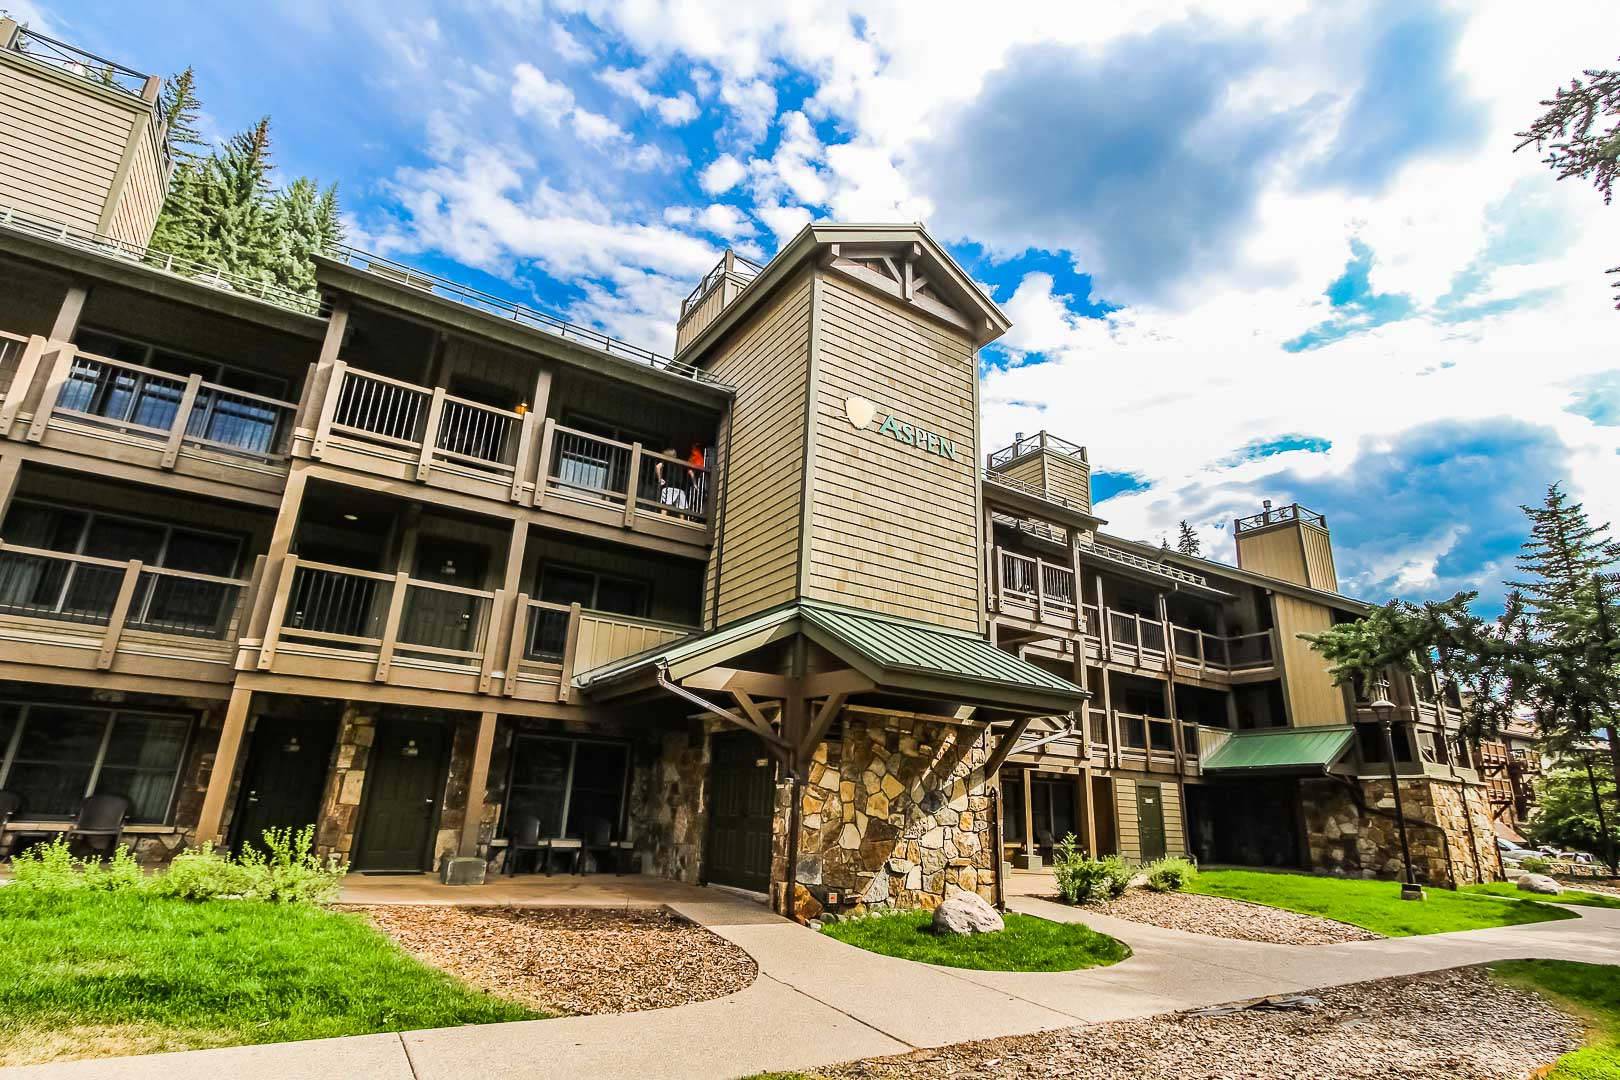 A stoic resort building at VRI's Aspen at Streamside in Colorado.